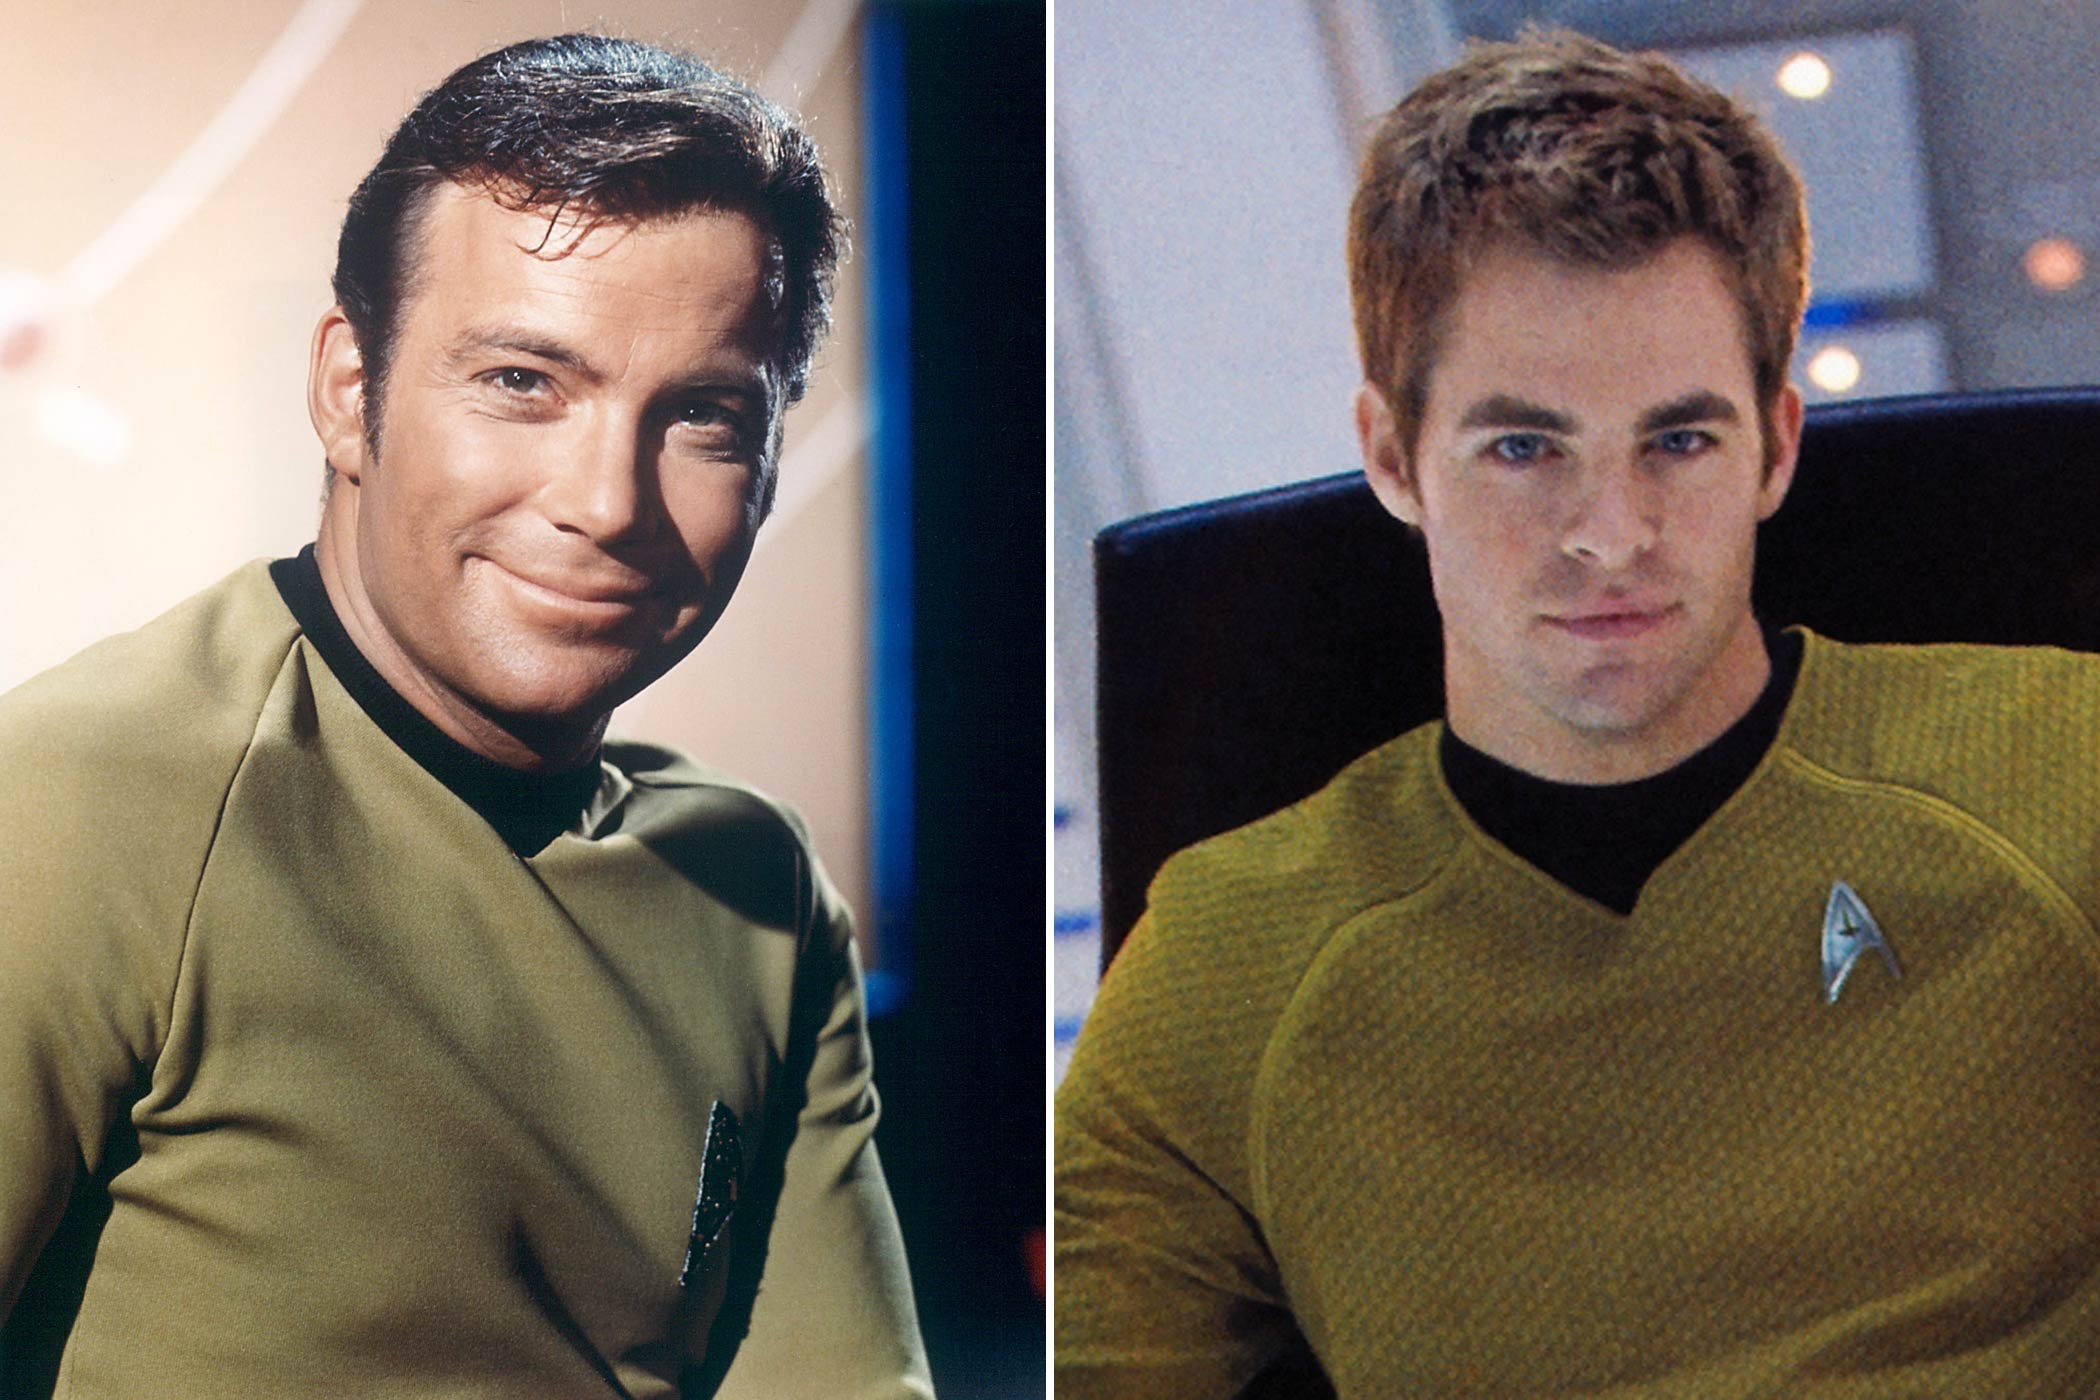 From left: William Shatner and Chris Pine as James T. Kirk